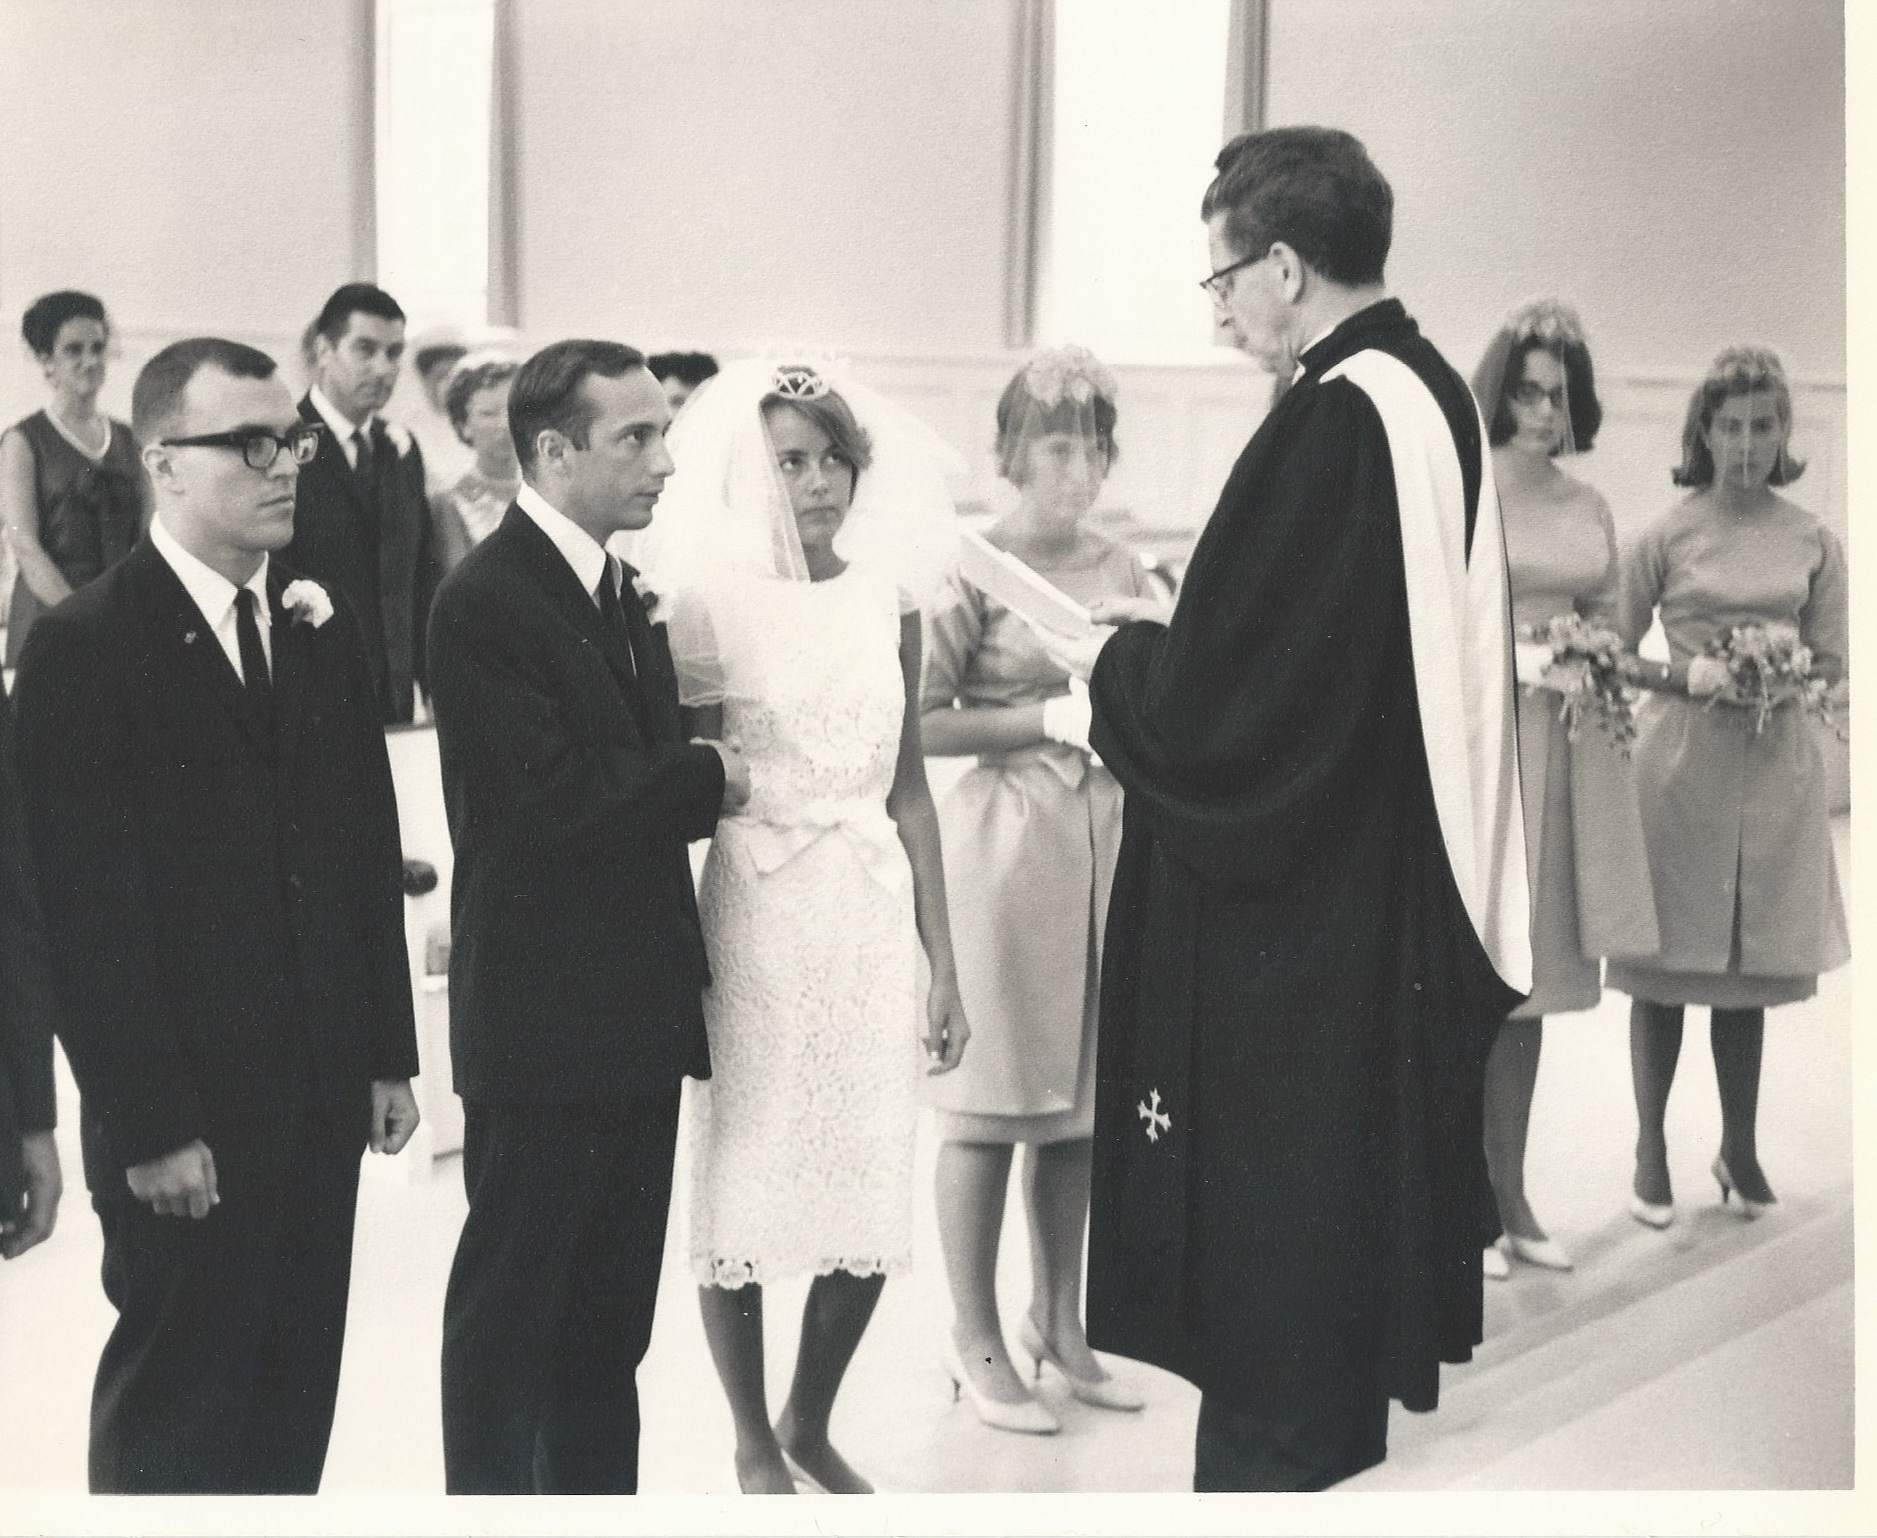 Rev. Renton officiating the marriage of Stewart and Gay Harkness Quarty in 1964